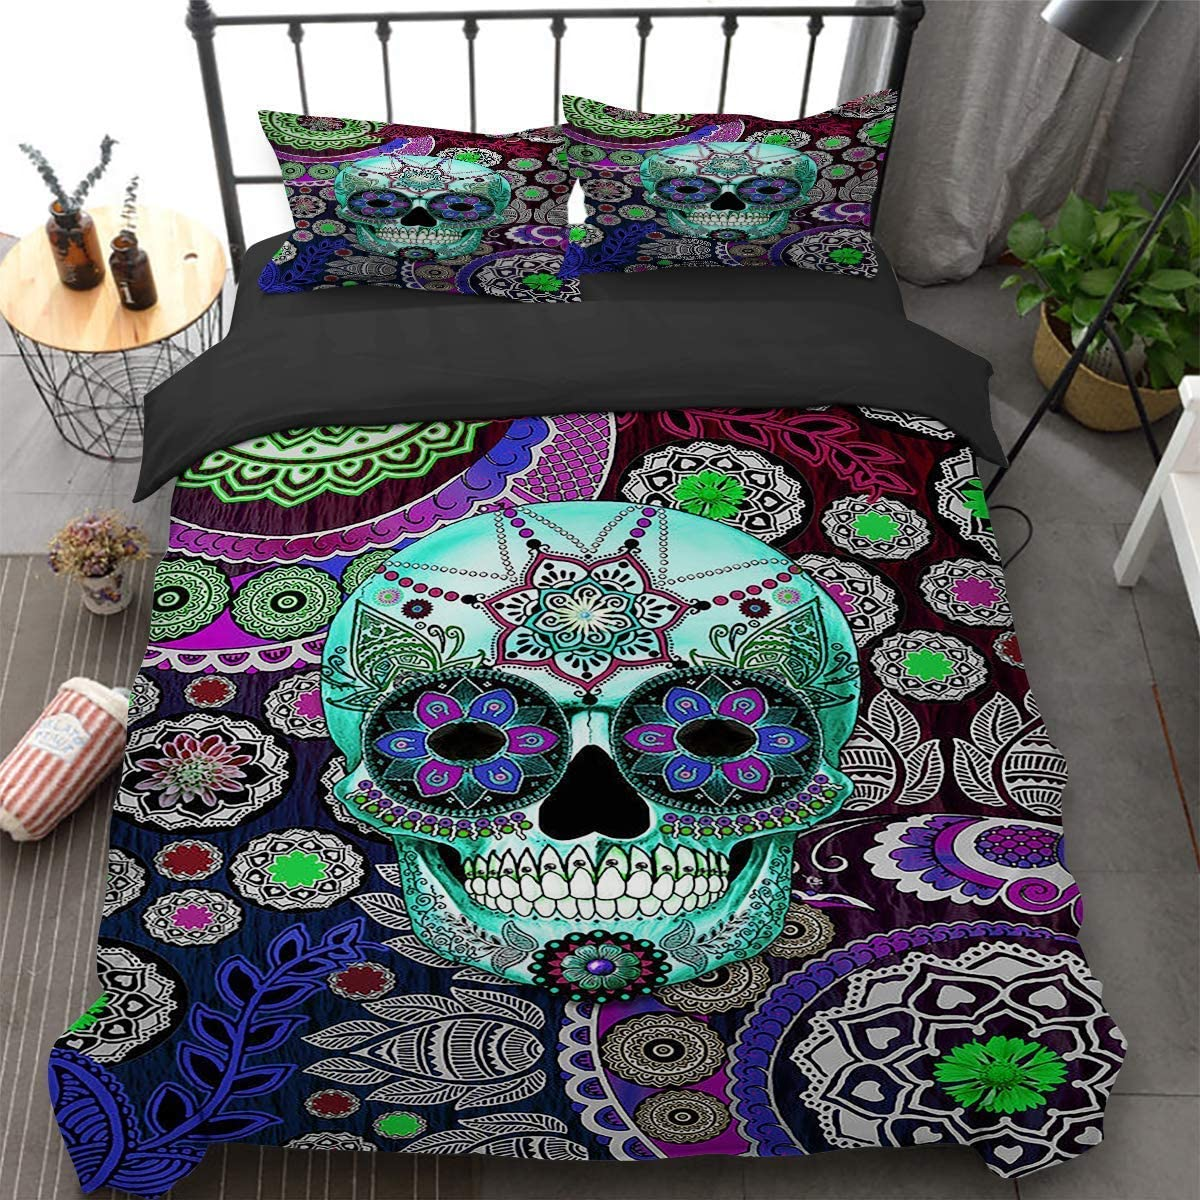 "Skull Bedding Set 3D Printed Bohemia Floral Skull Duvet Cover with 2 Pillowcases Flowers Pattern Bedding Set with Zipper Closure Luxury Reversible Quilt Cover Sets Queen Size 90"" x 90""(Not Comforter)"